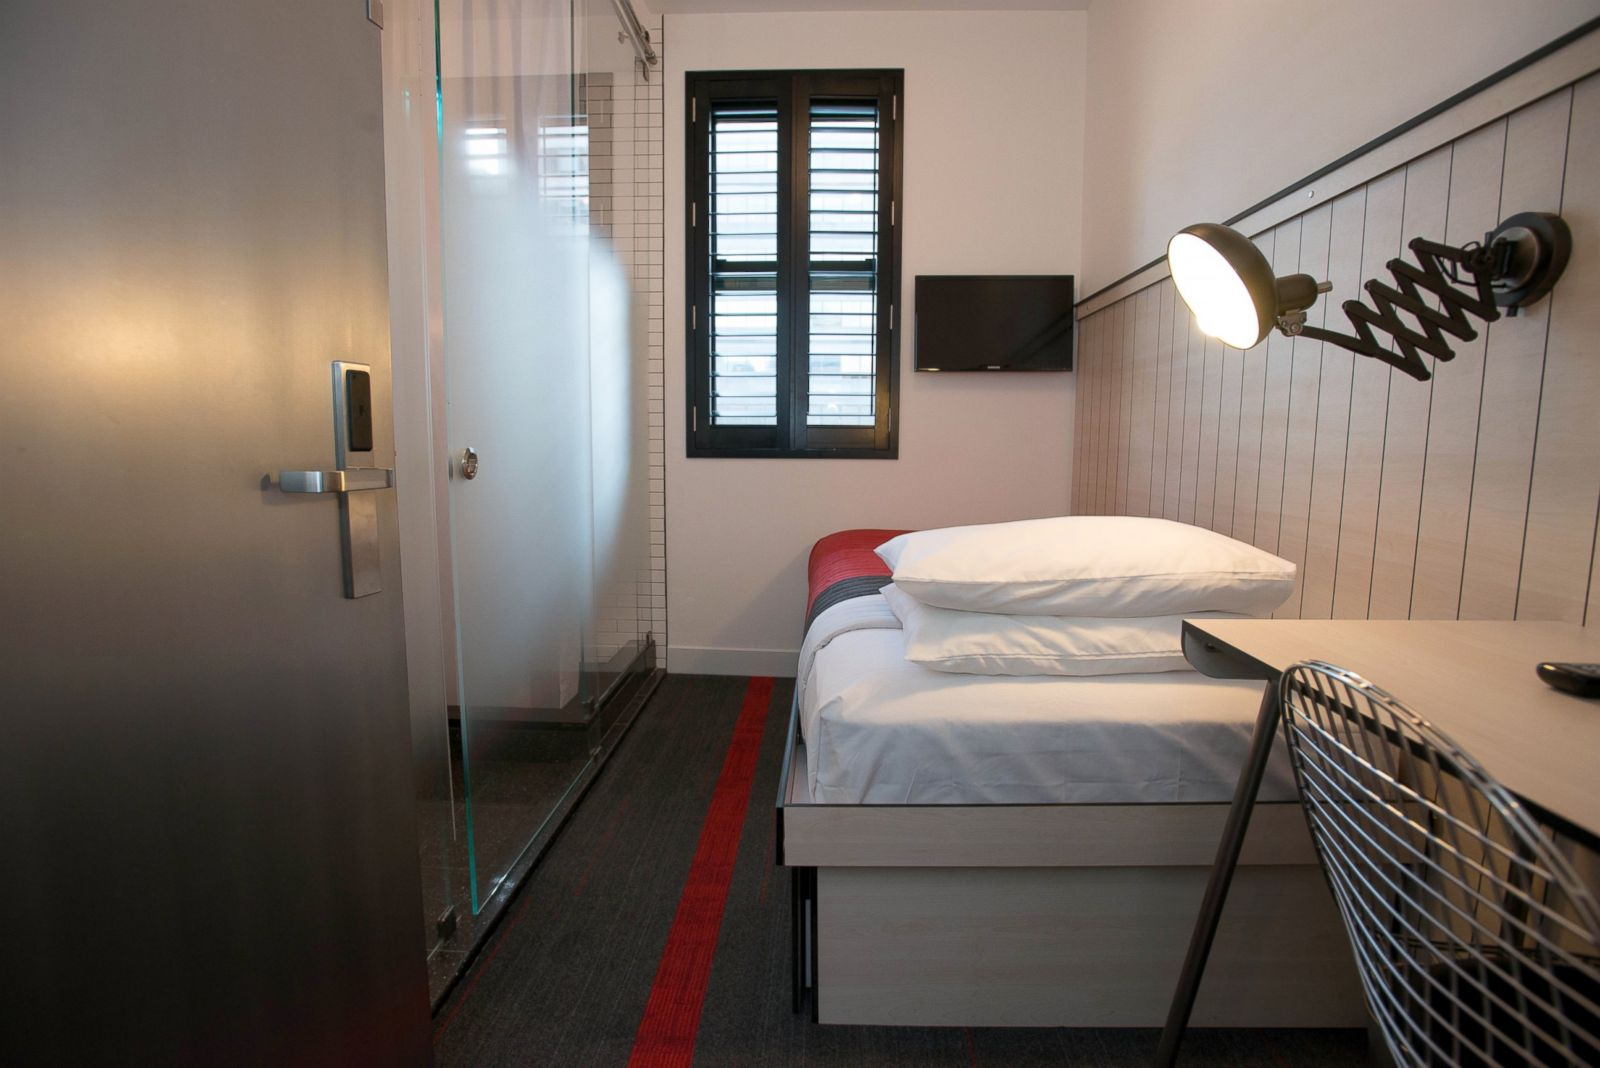 the smallest hotel rooms in new york city according to. Black Bedroom Furniture Sets. Home Design Ideas